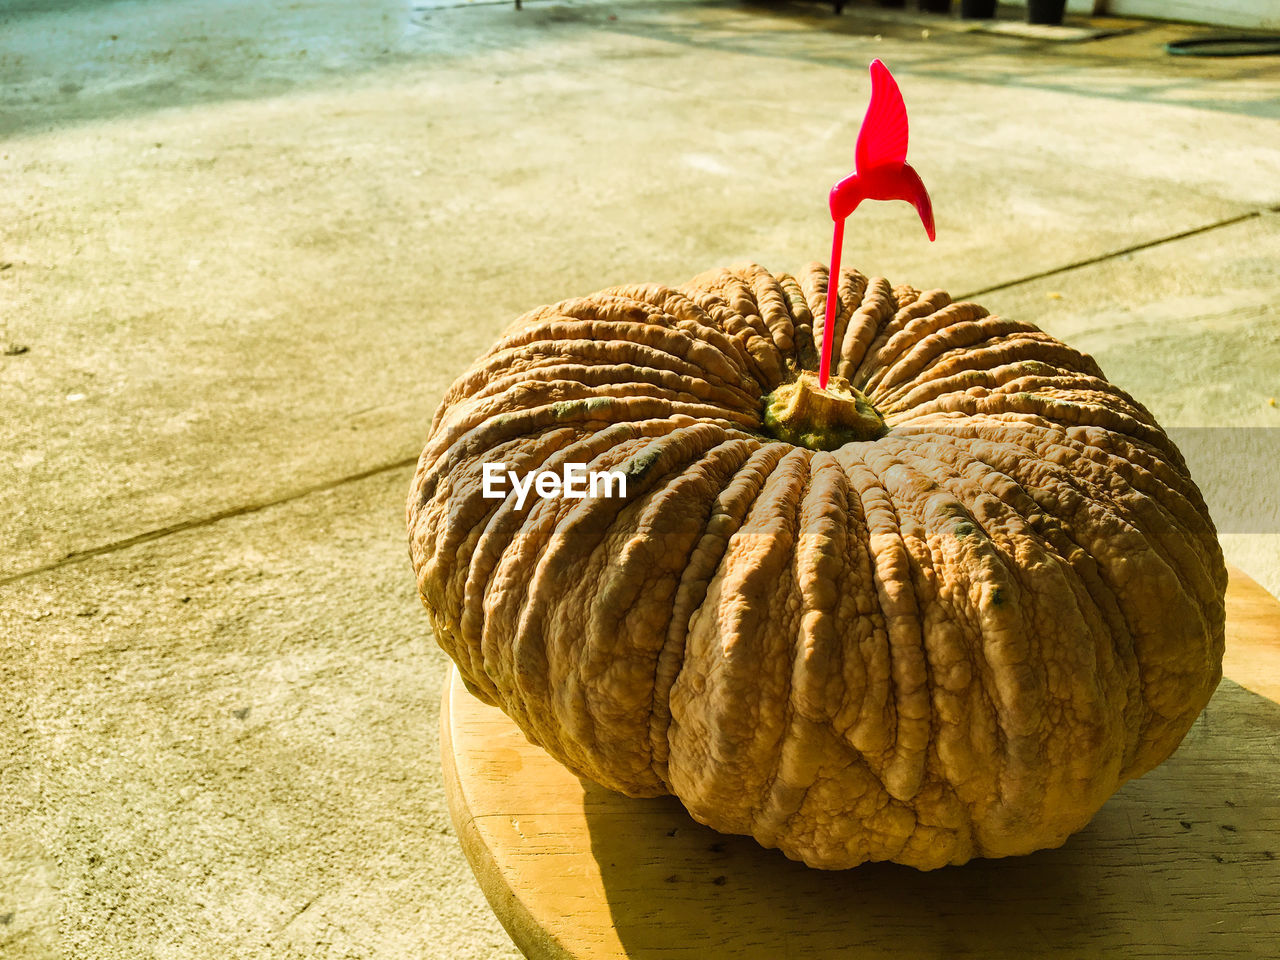 Close-up of damaged pumpkin on table